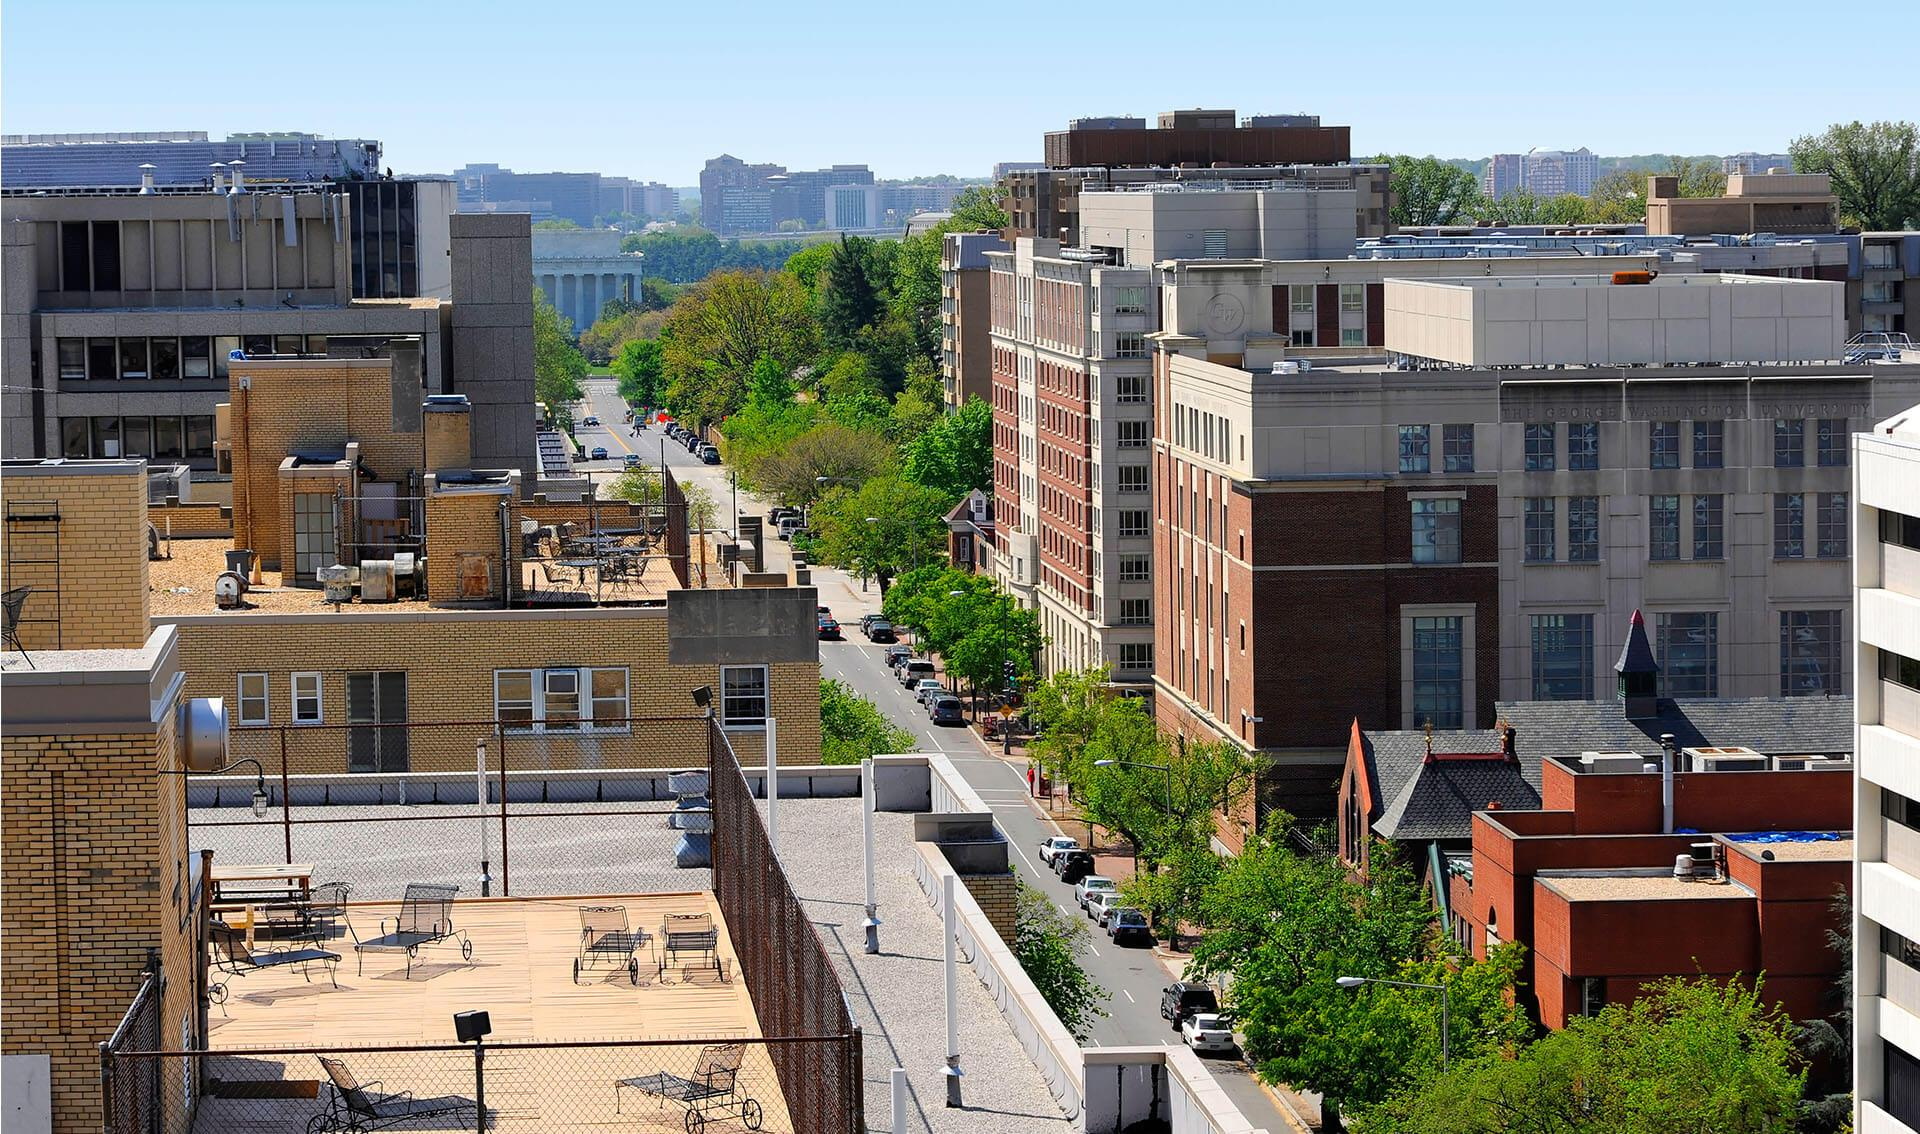 slide image The Avenue from the rooftop.